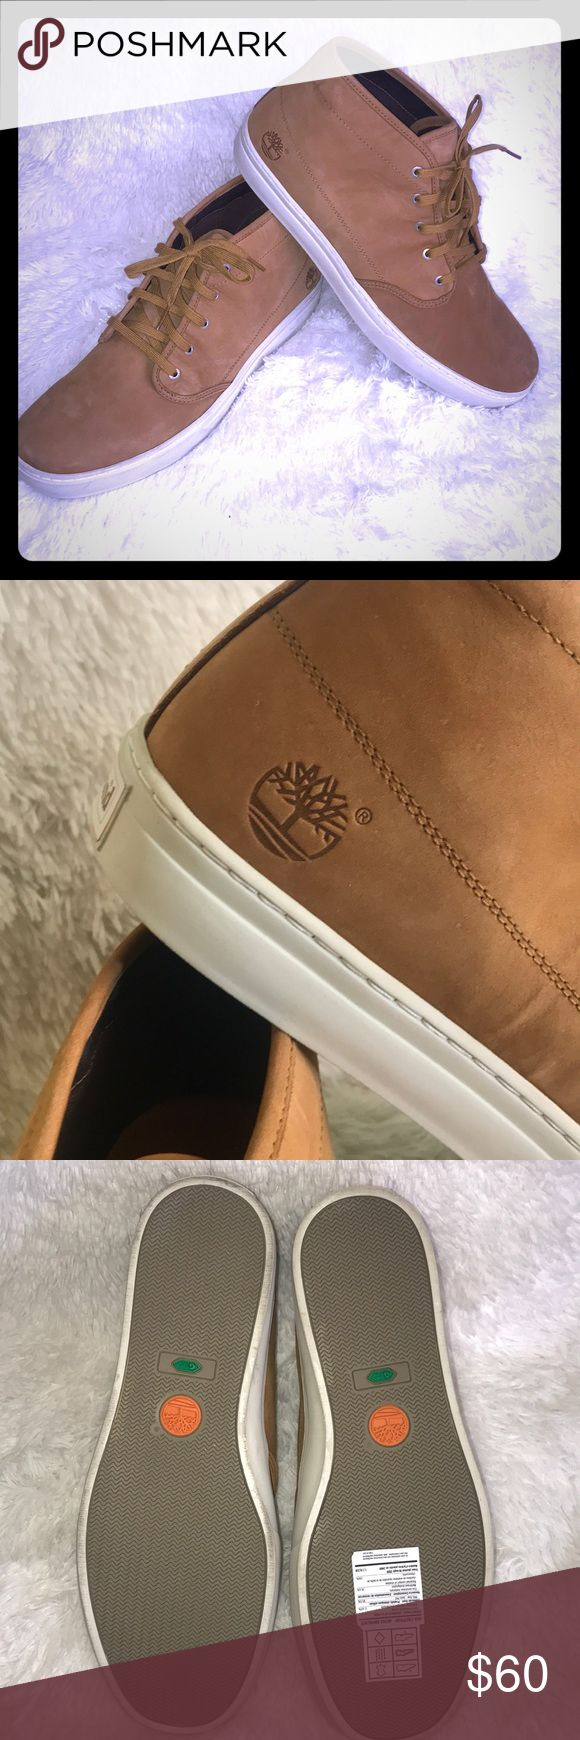 Timberland Earthkeepers CHUKKA BOOTS Brand New  Timberland Earthkeepers CHUKKA BOOTS Never used  Tan Leather  Genuine Leather Upper  White Sole Timberland Shoes Boots